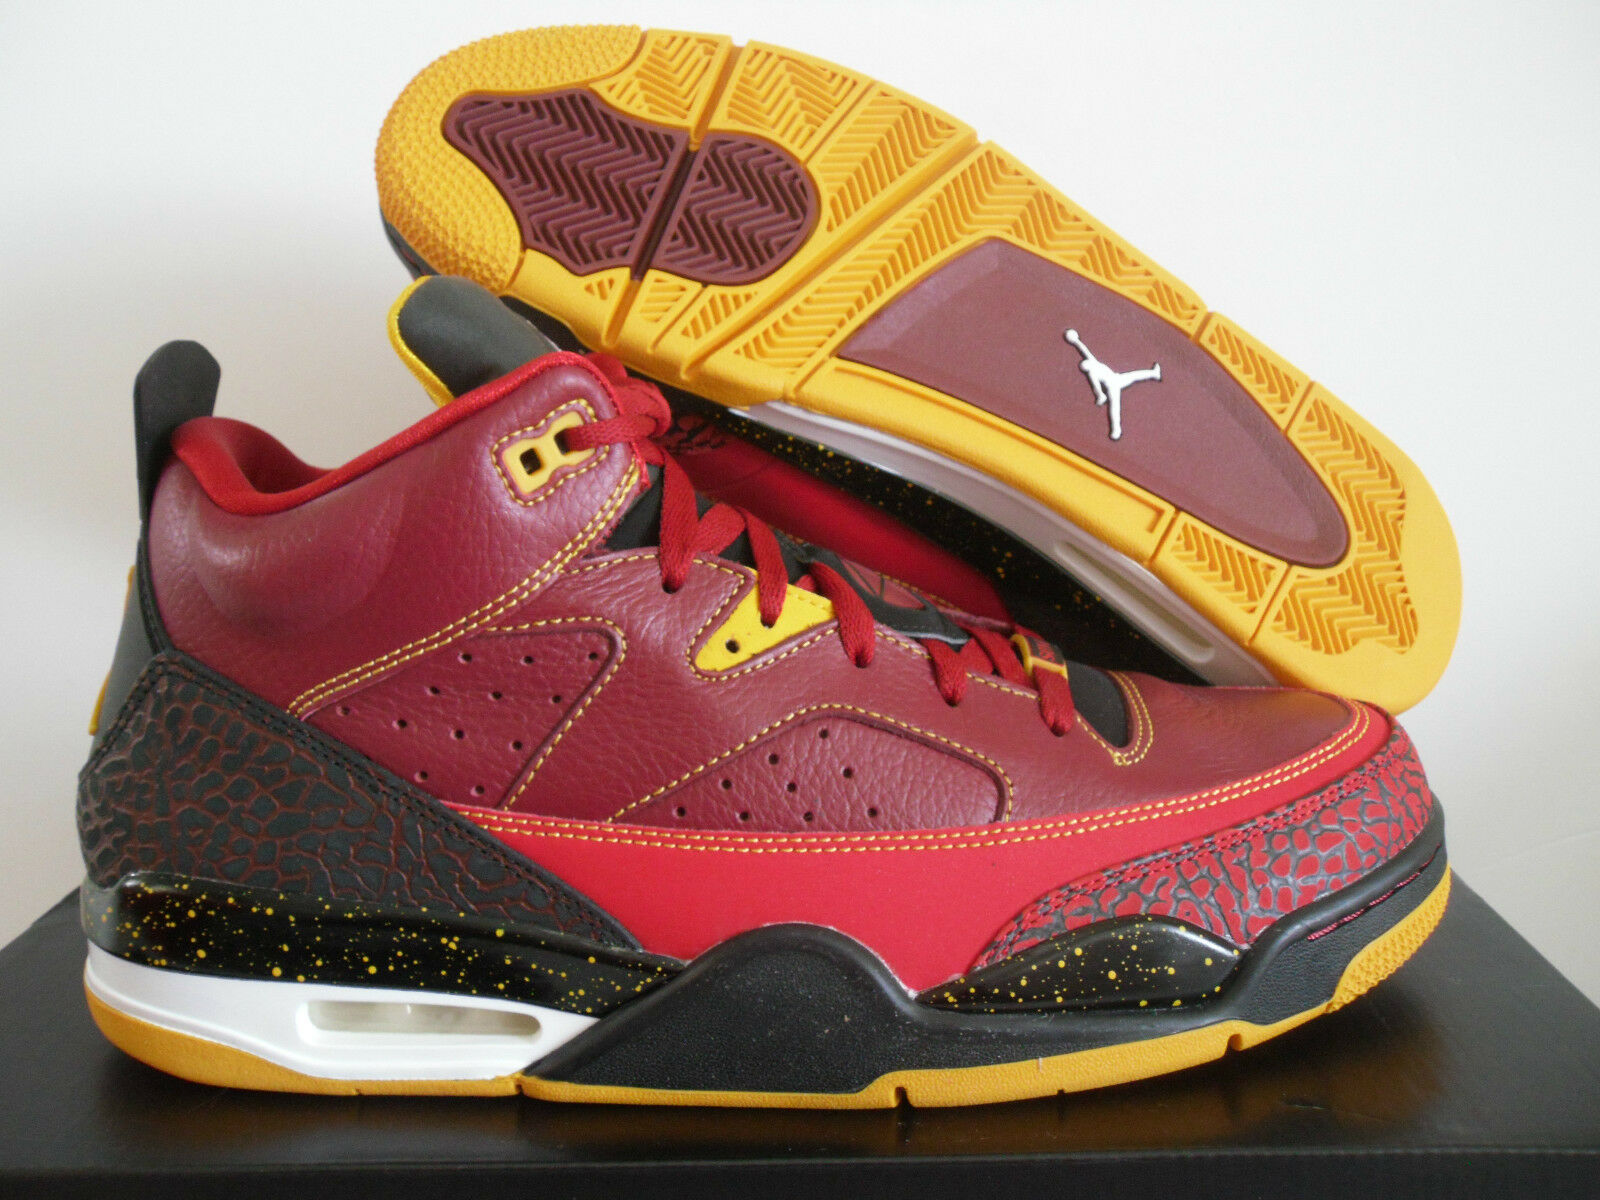 NIKE AIR JORDAN SON OF ATLANTA faible TEAM rouge-GYM rouge ATLANTA OF HAWKS SZ 11.5 [580603-607] dad58b